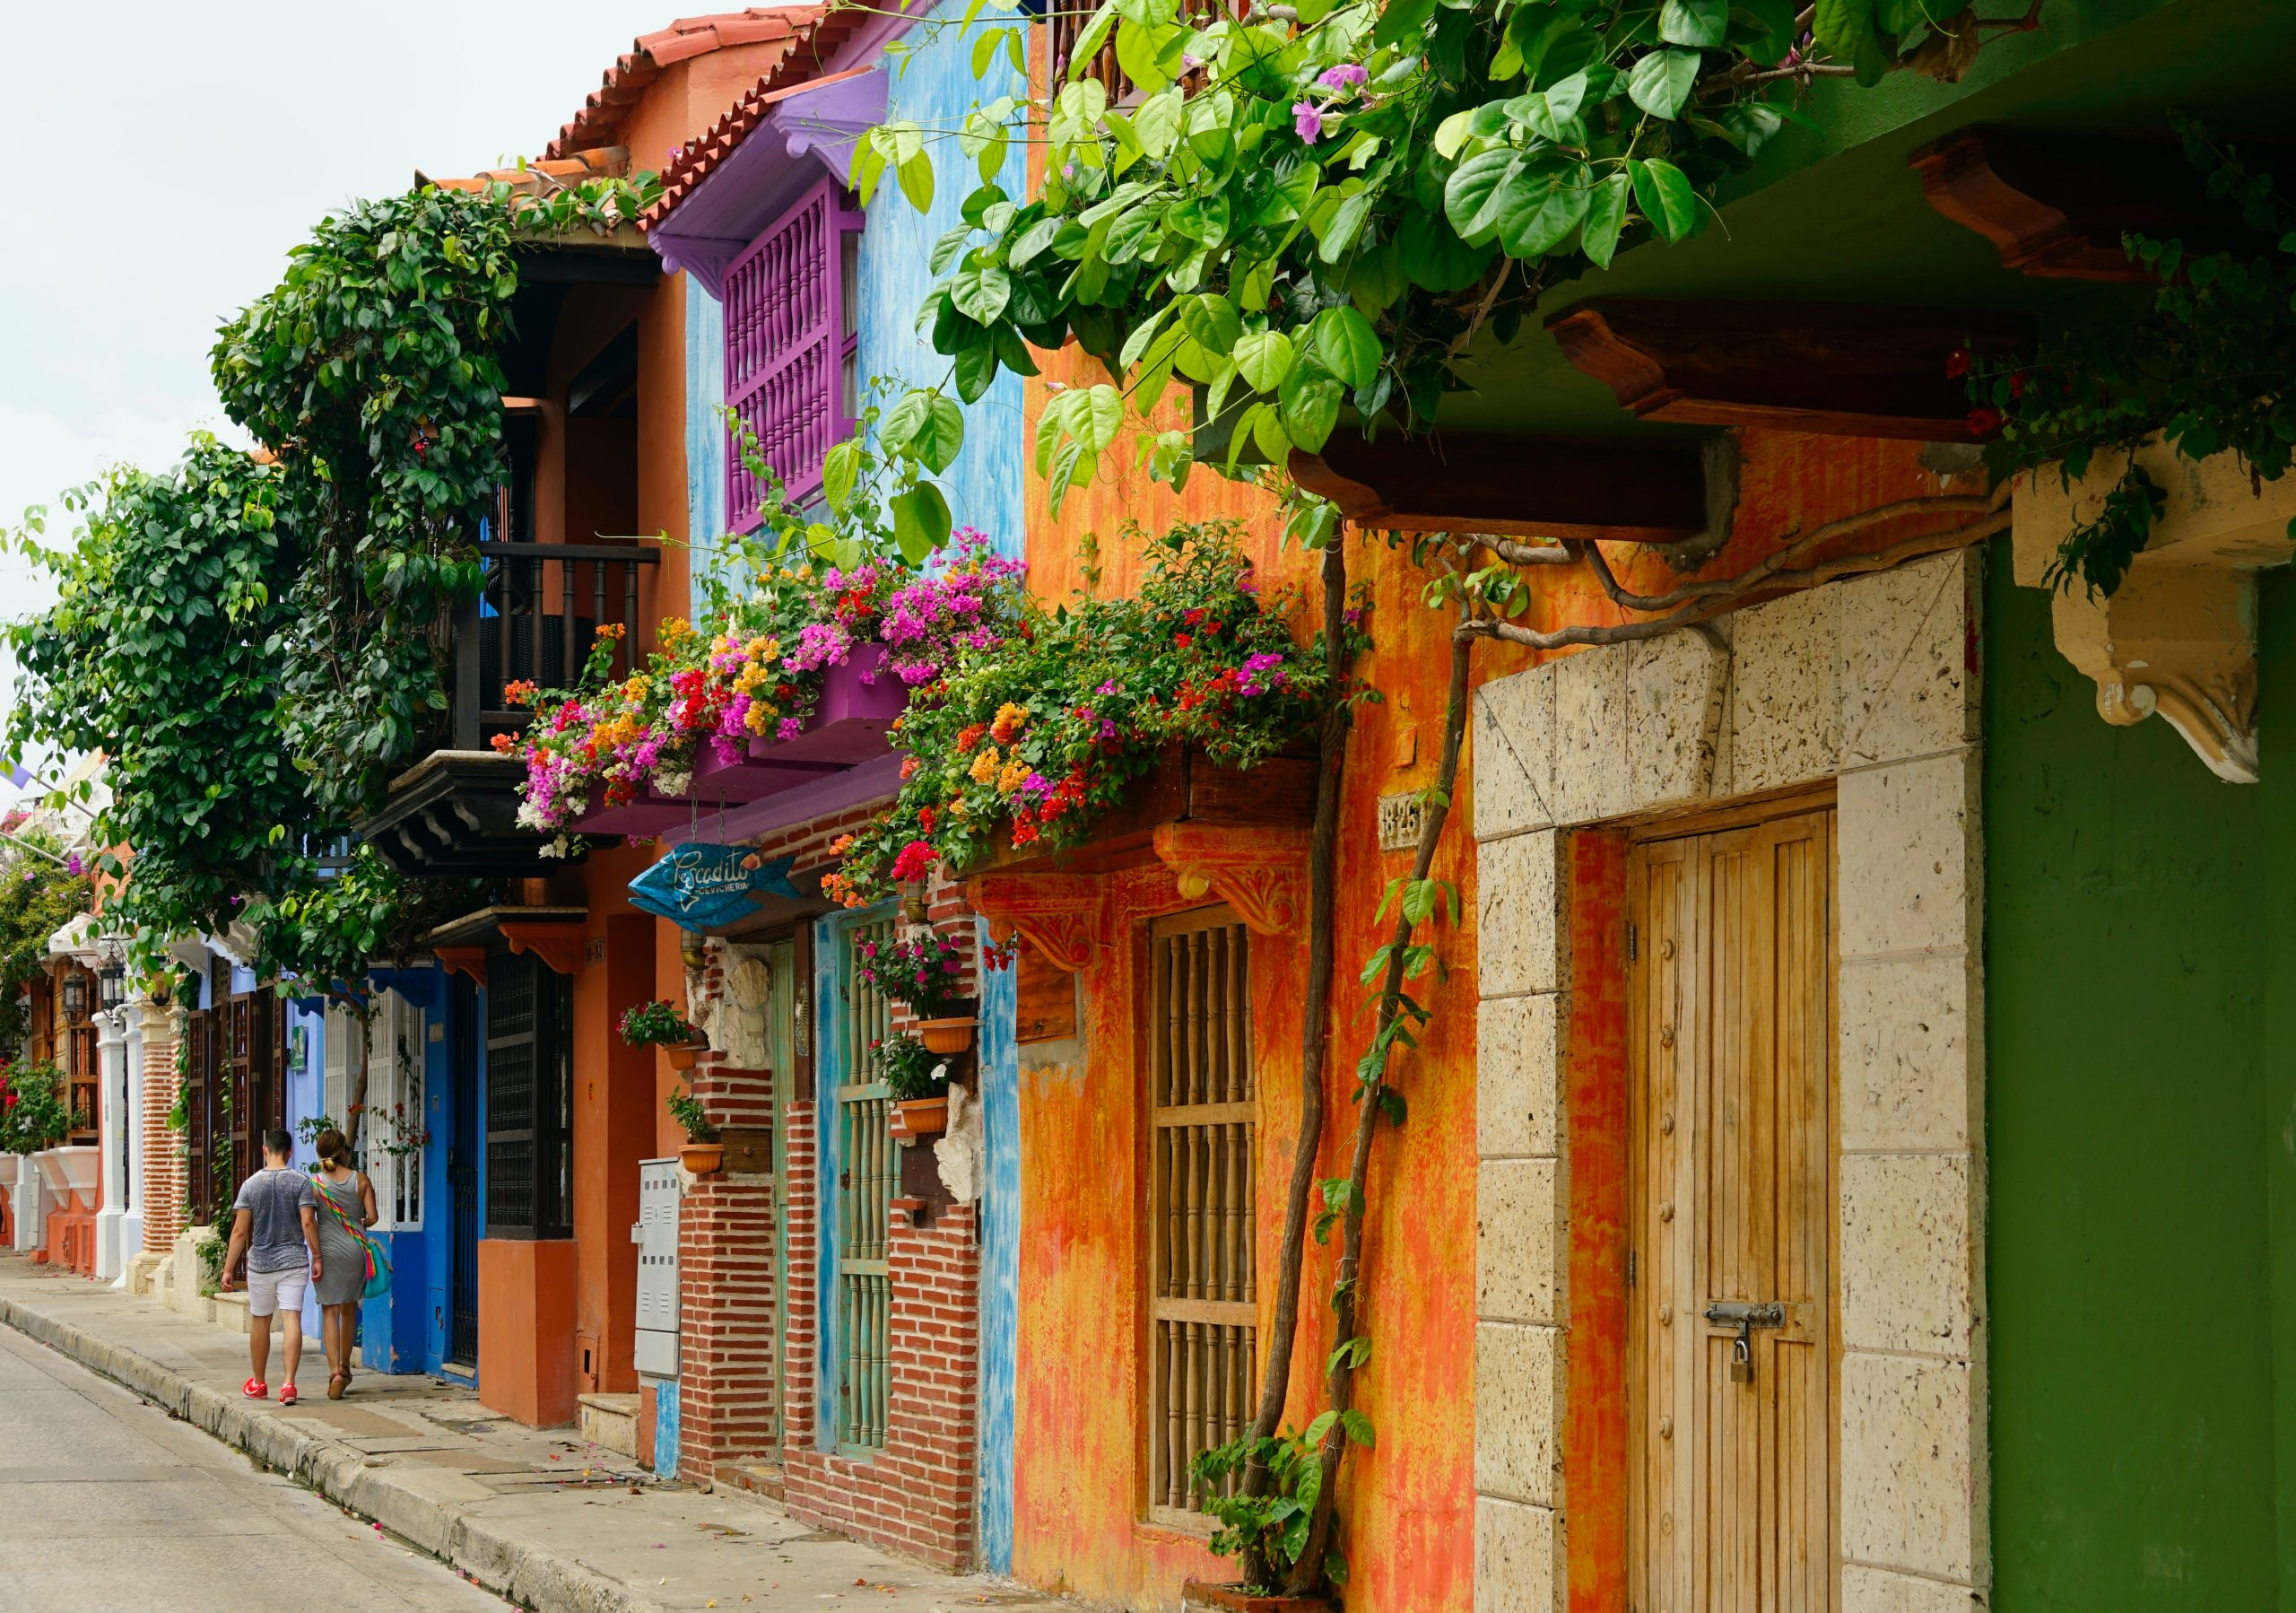 A row of brightly colored houses in Cartagena, Colombia